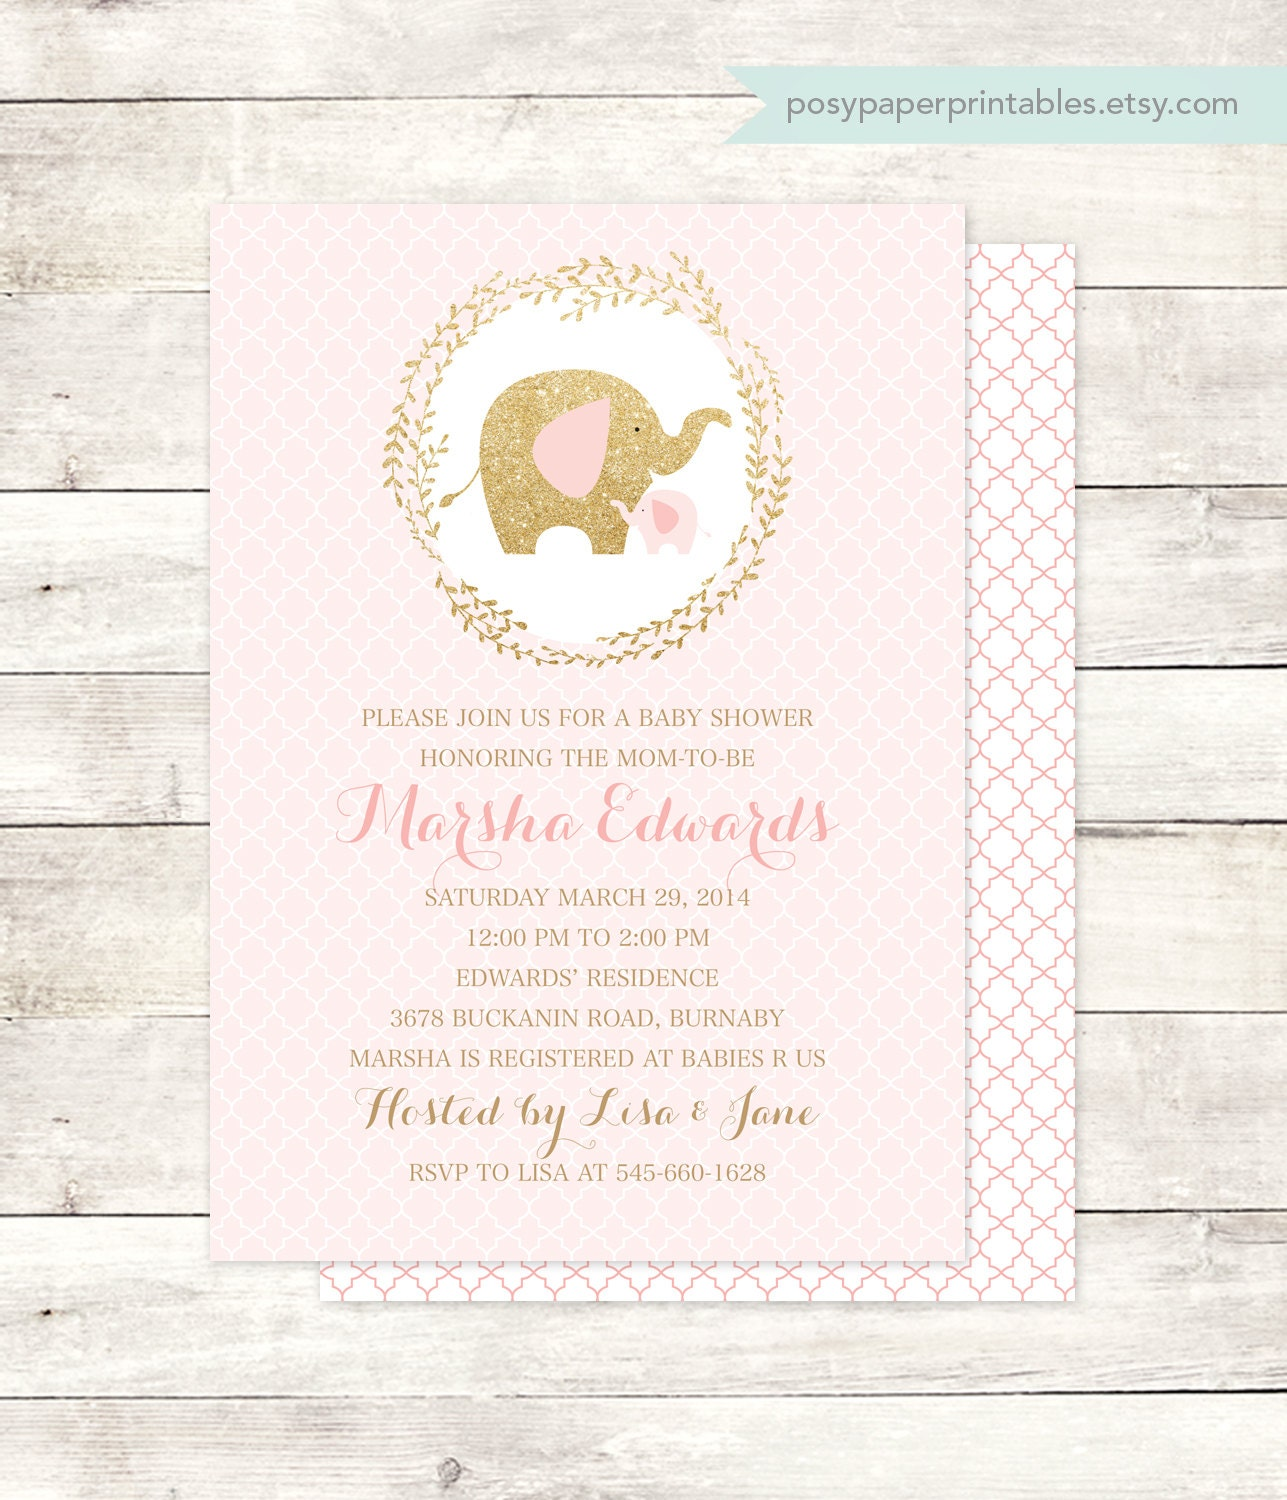 pink gold elephant baby shower invitation by posypaperprintables